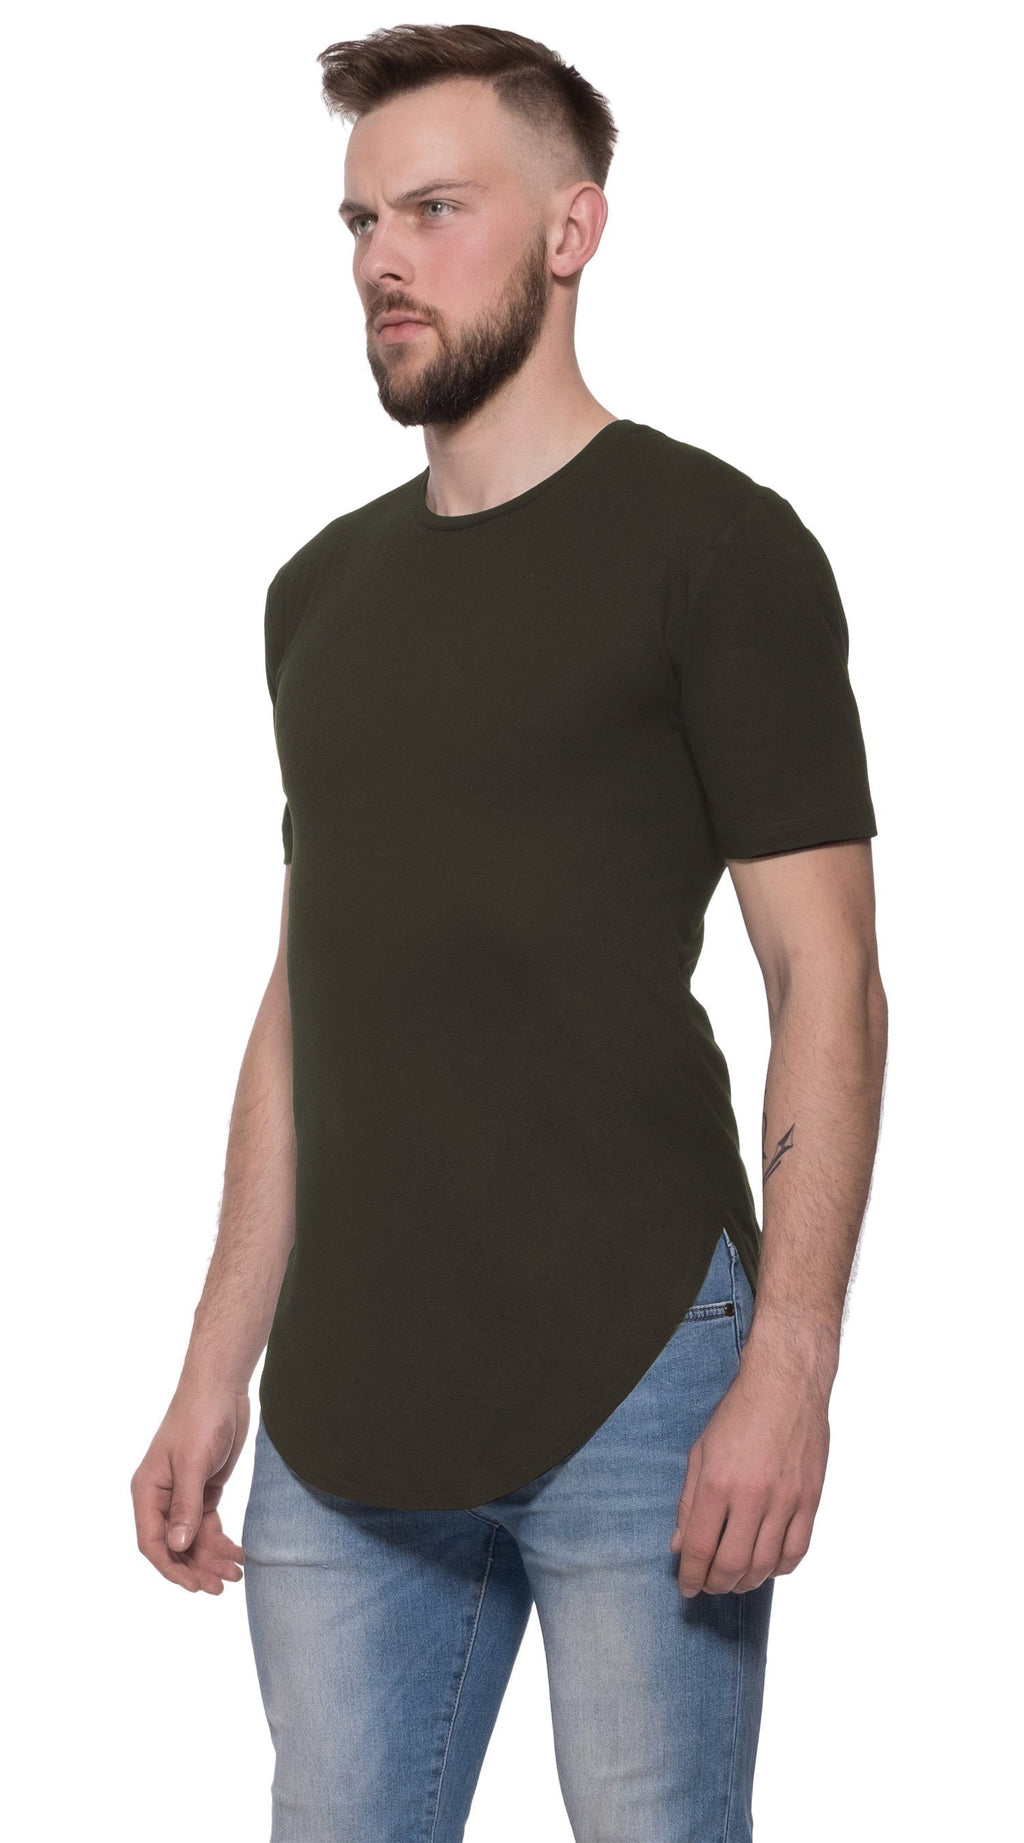 TheG Man Viscose Basic 2/2 Long Tee // khaki